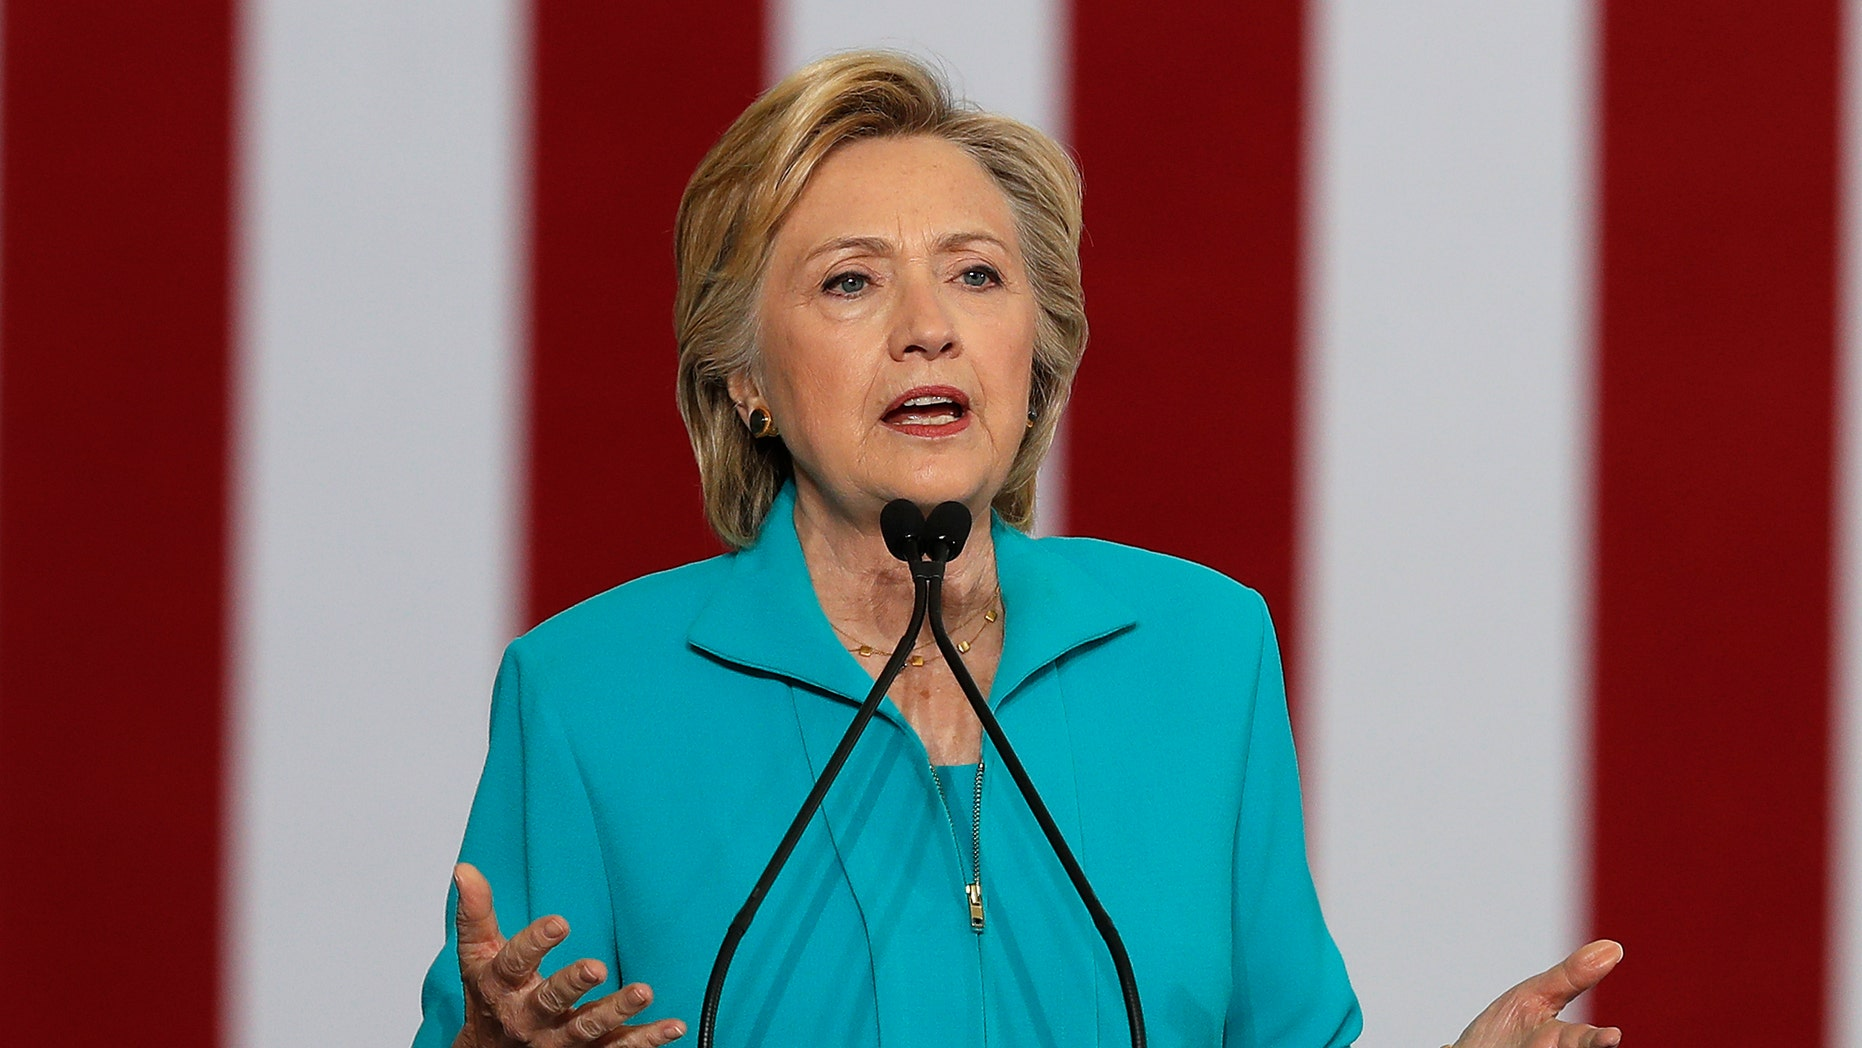 FILE - In this Thursday, Aug. 25, 2016 file photo, Democratic presidential candidate Hillary Clinton speaks at a campaign event at Truckee Meadows Community College in Reno, Nev.